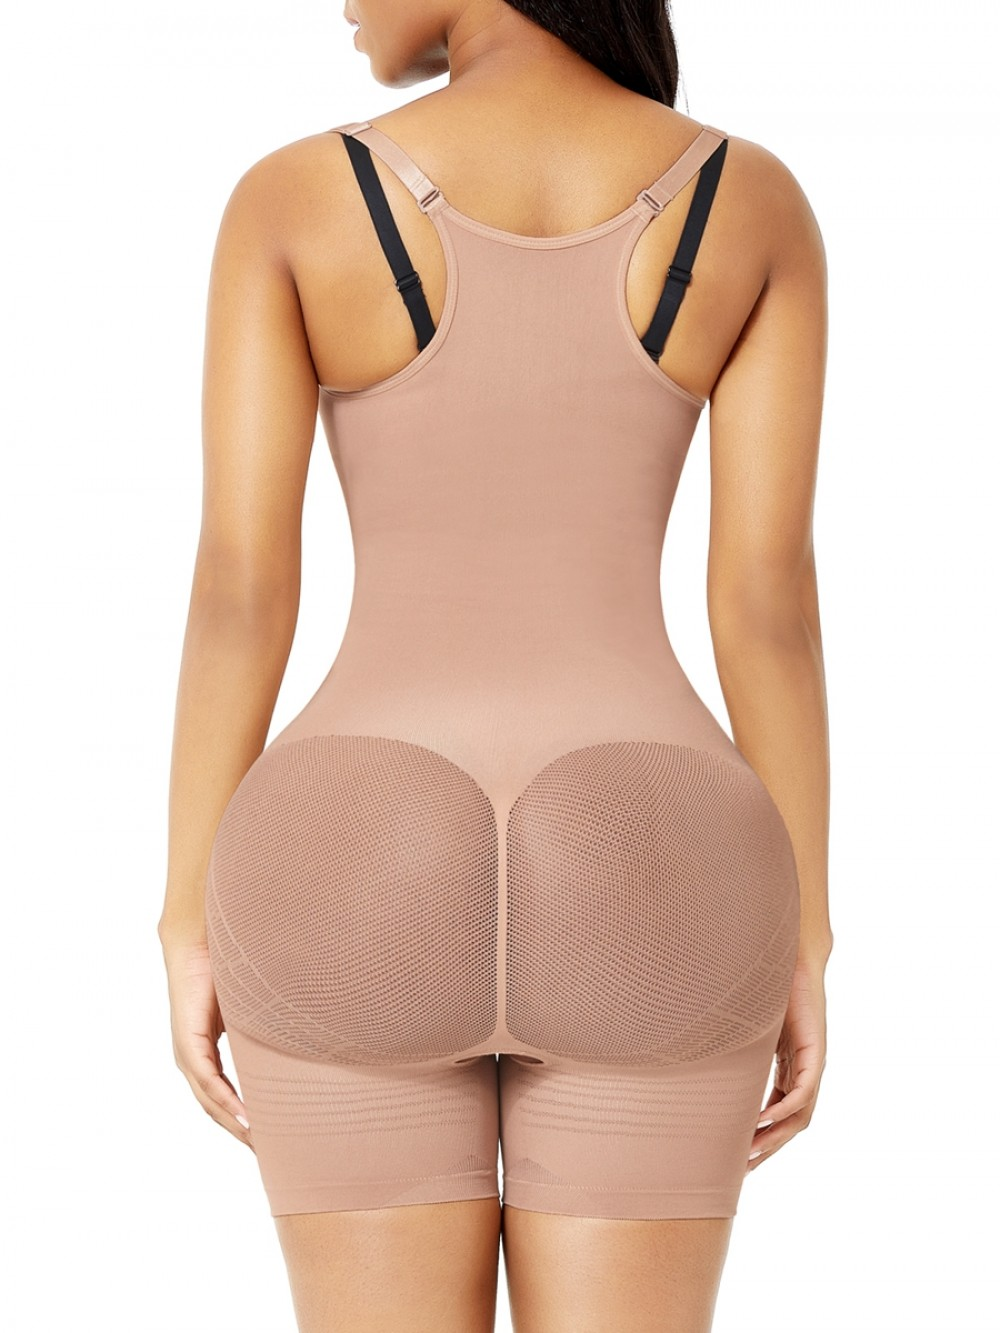 Nude Butt Lifter Large Size Seamless Body Shaper Curve Creator